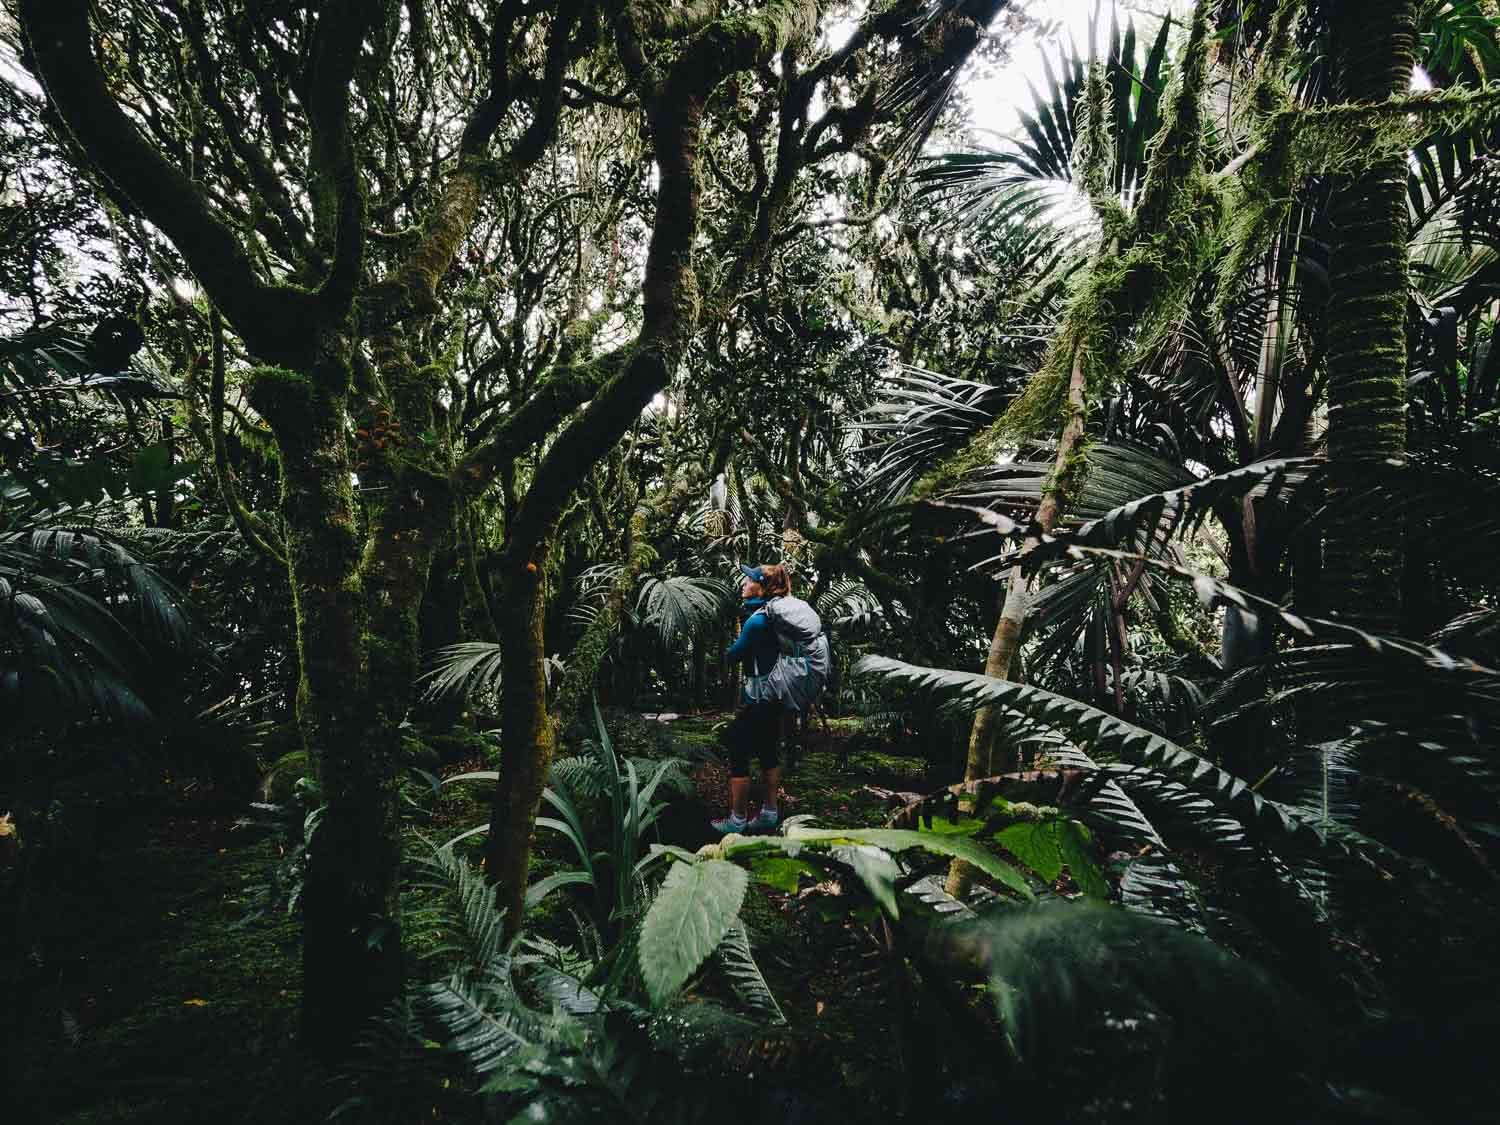 Lord Howe Island's Photography Hot Spots, Matt Horspool, jungle, rainforest, mist forest, greenery, undergrowth